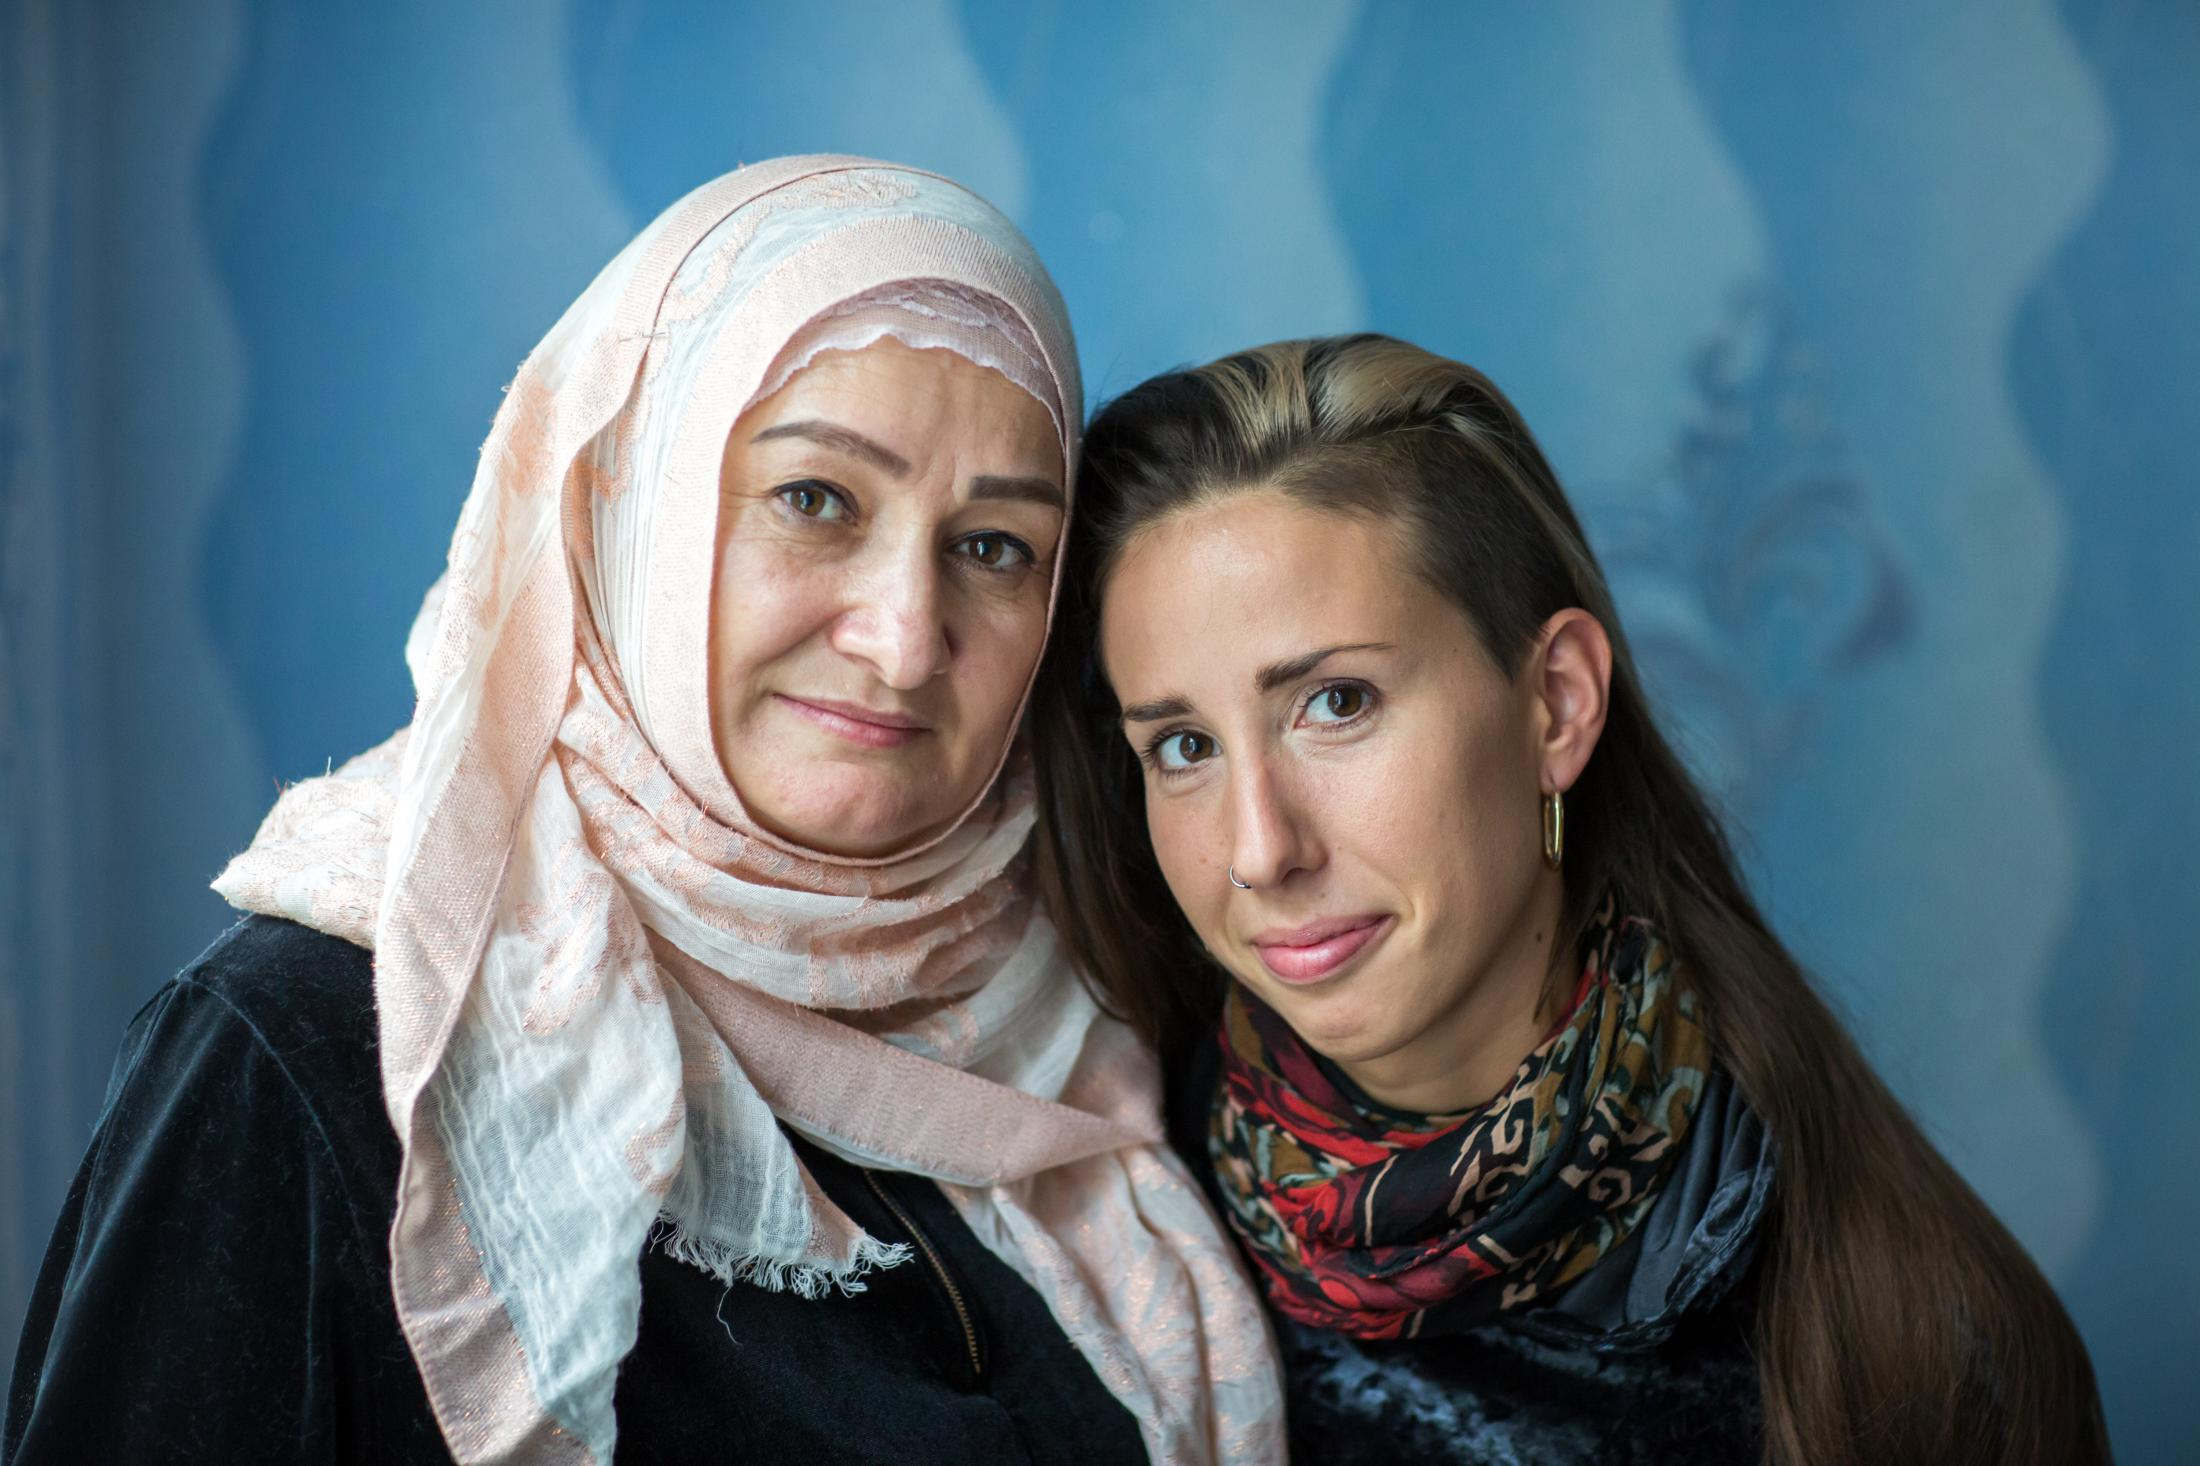 """Khedi is from Chechnya and Jarmila is from Poland. """" I remember your welcome""""- is an art installation with portraits of refugees and the relationships they have made since arriving in Europe. Portrait for Snapshots from the Borders"""